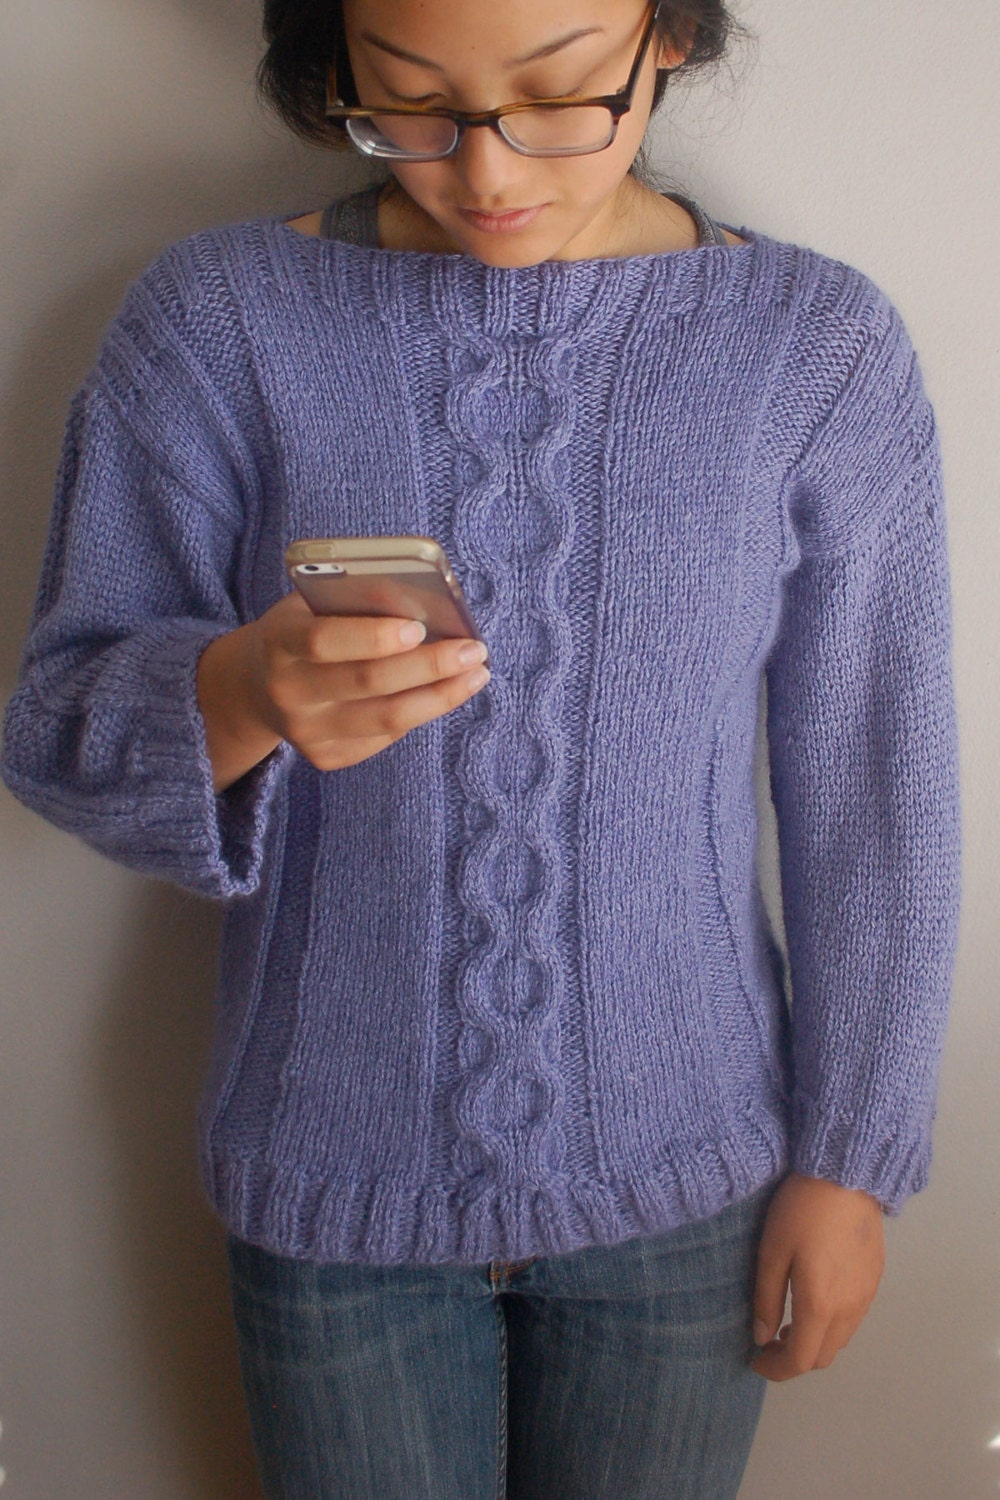 Sweater Knit : Cable sweater knitting pattern easy to knit pullover